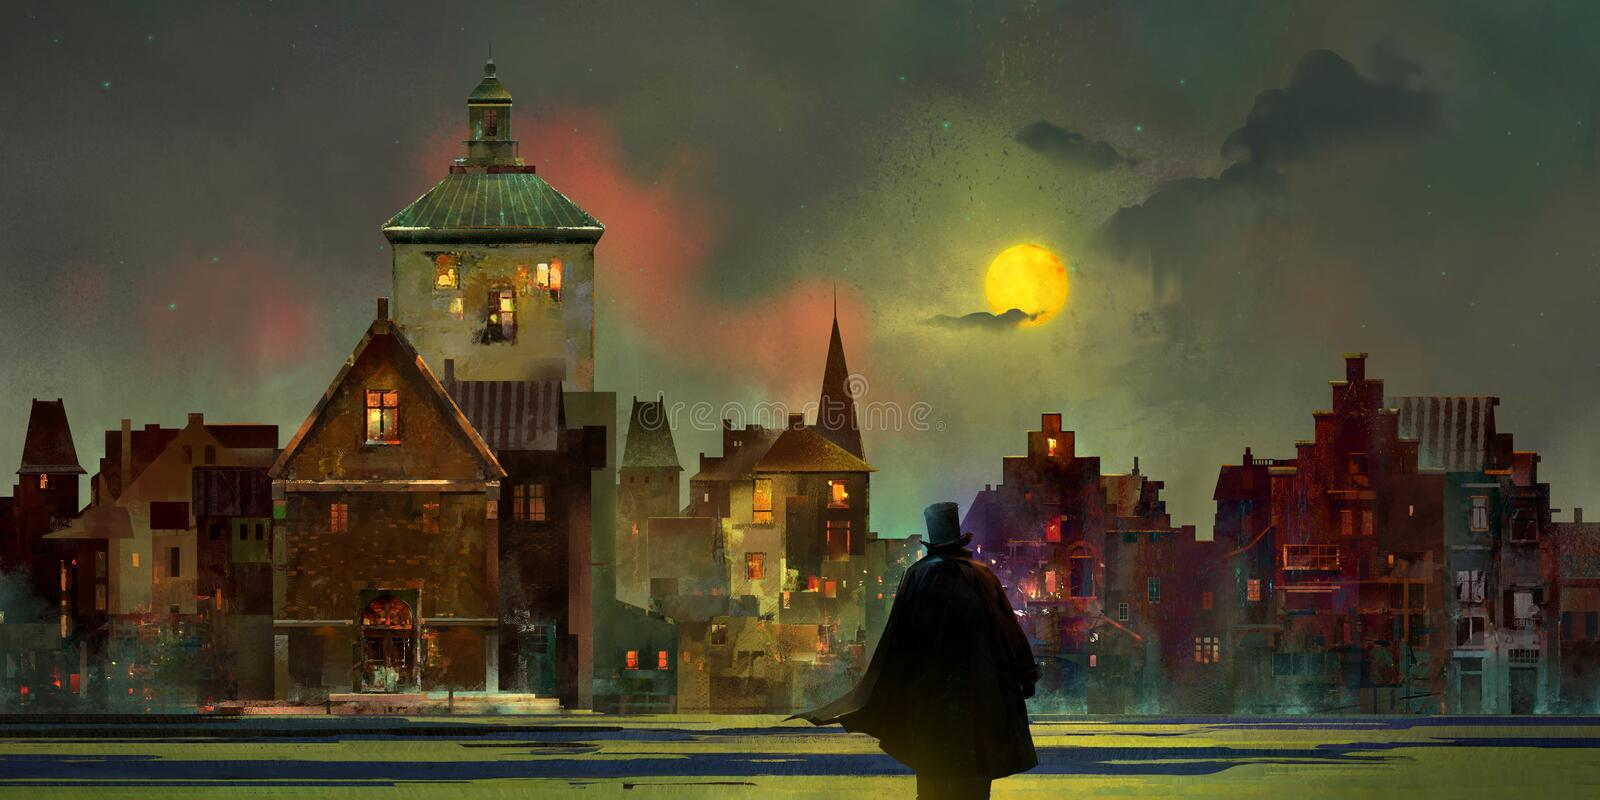 Drawn vintage urban lunar landscape at night with a man in a top hat stock image